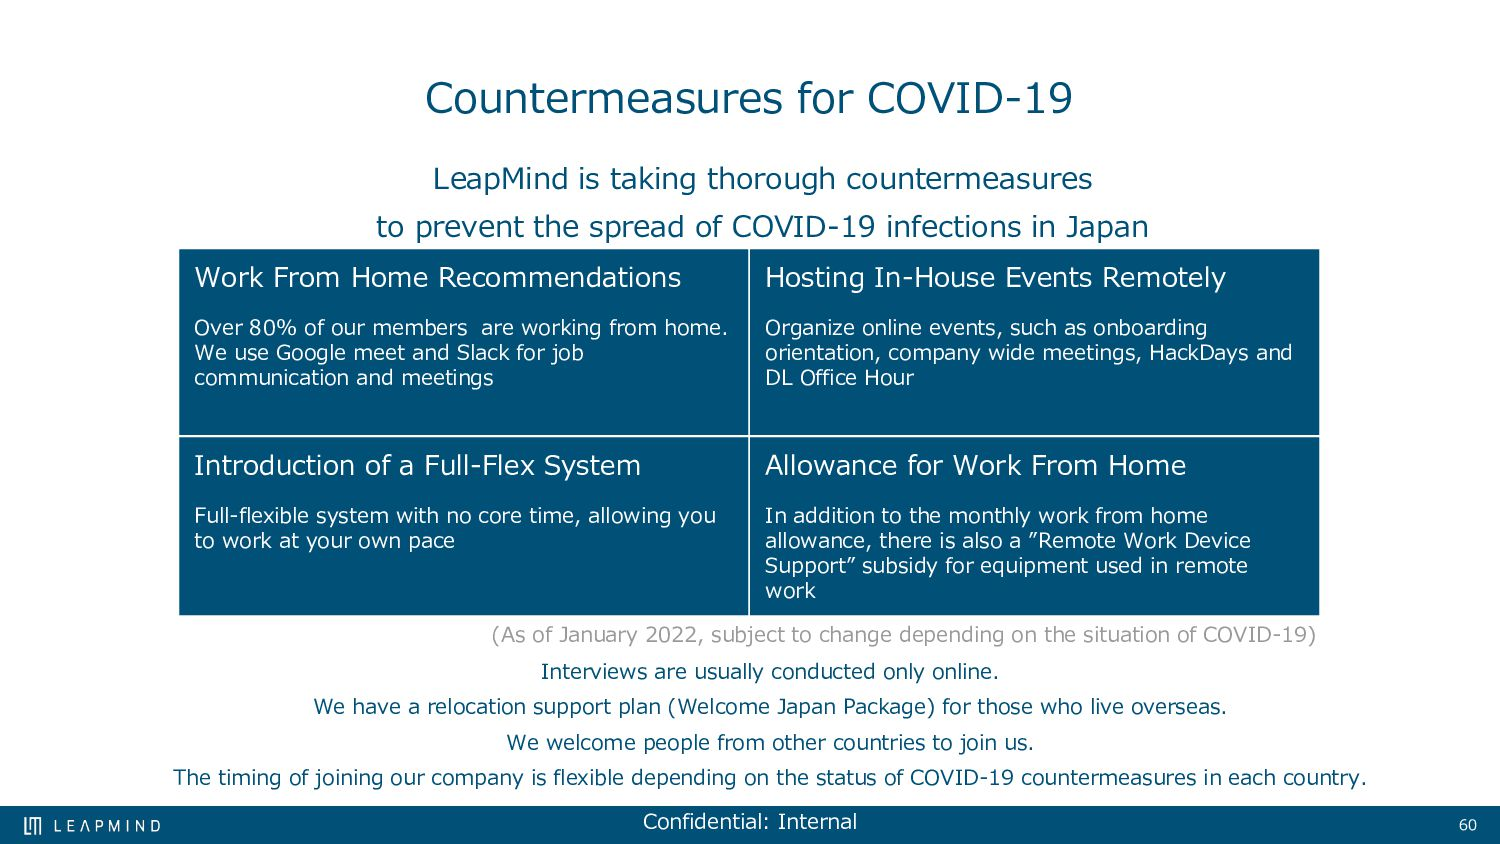 Confidential: Internal 60 Welcome Japan Package...